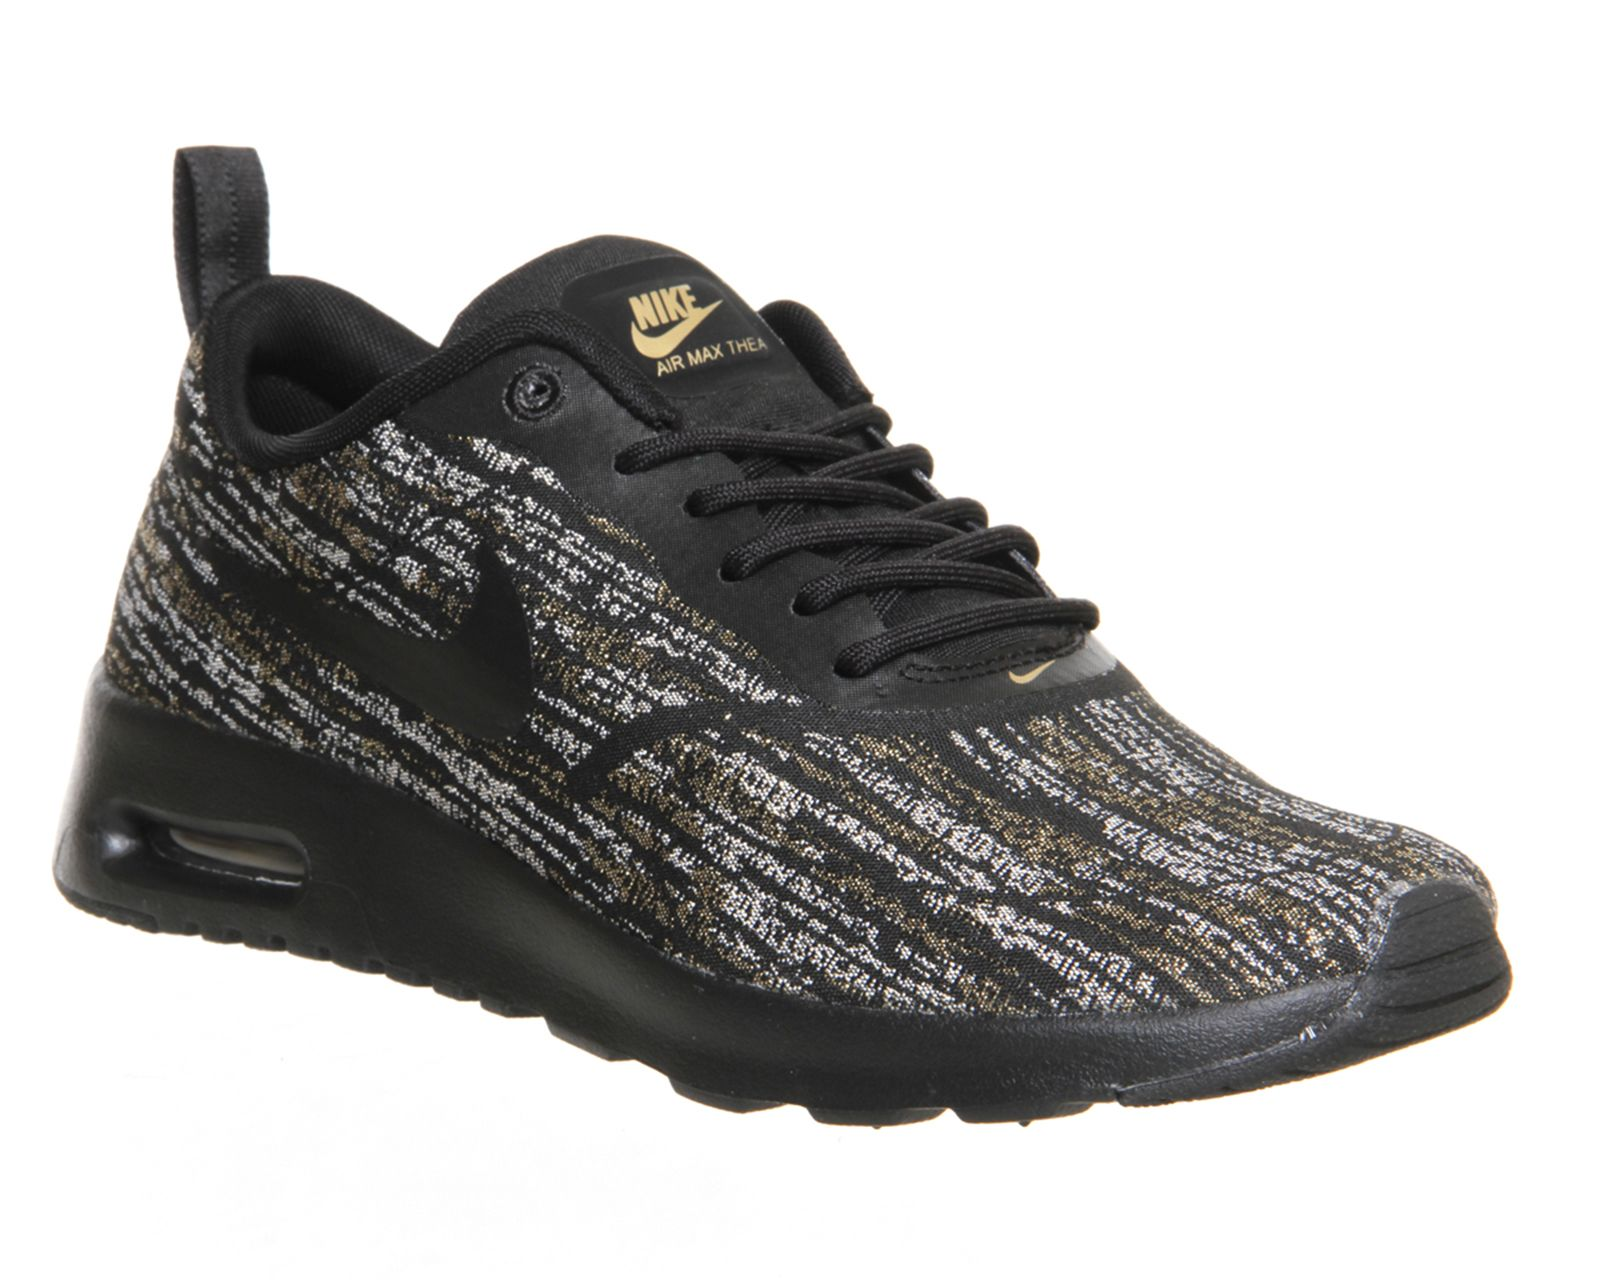 save off 5ab9c 60d87 Nike Air Max Thea Black Metallic Gold Jacquard - Hers trainers   Size 6